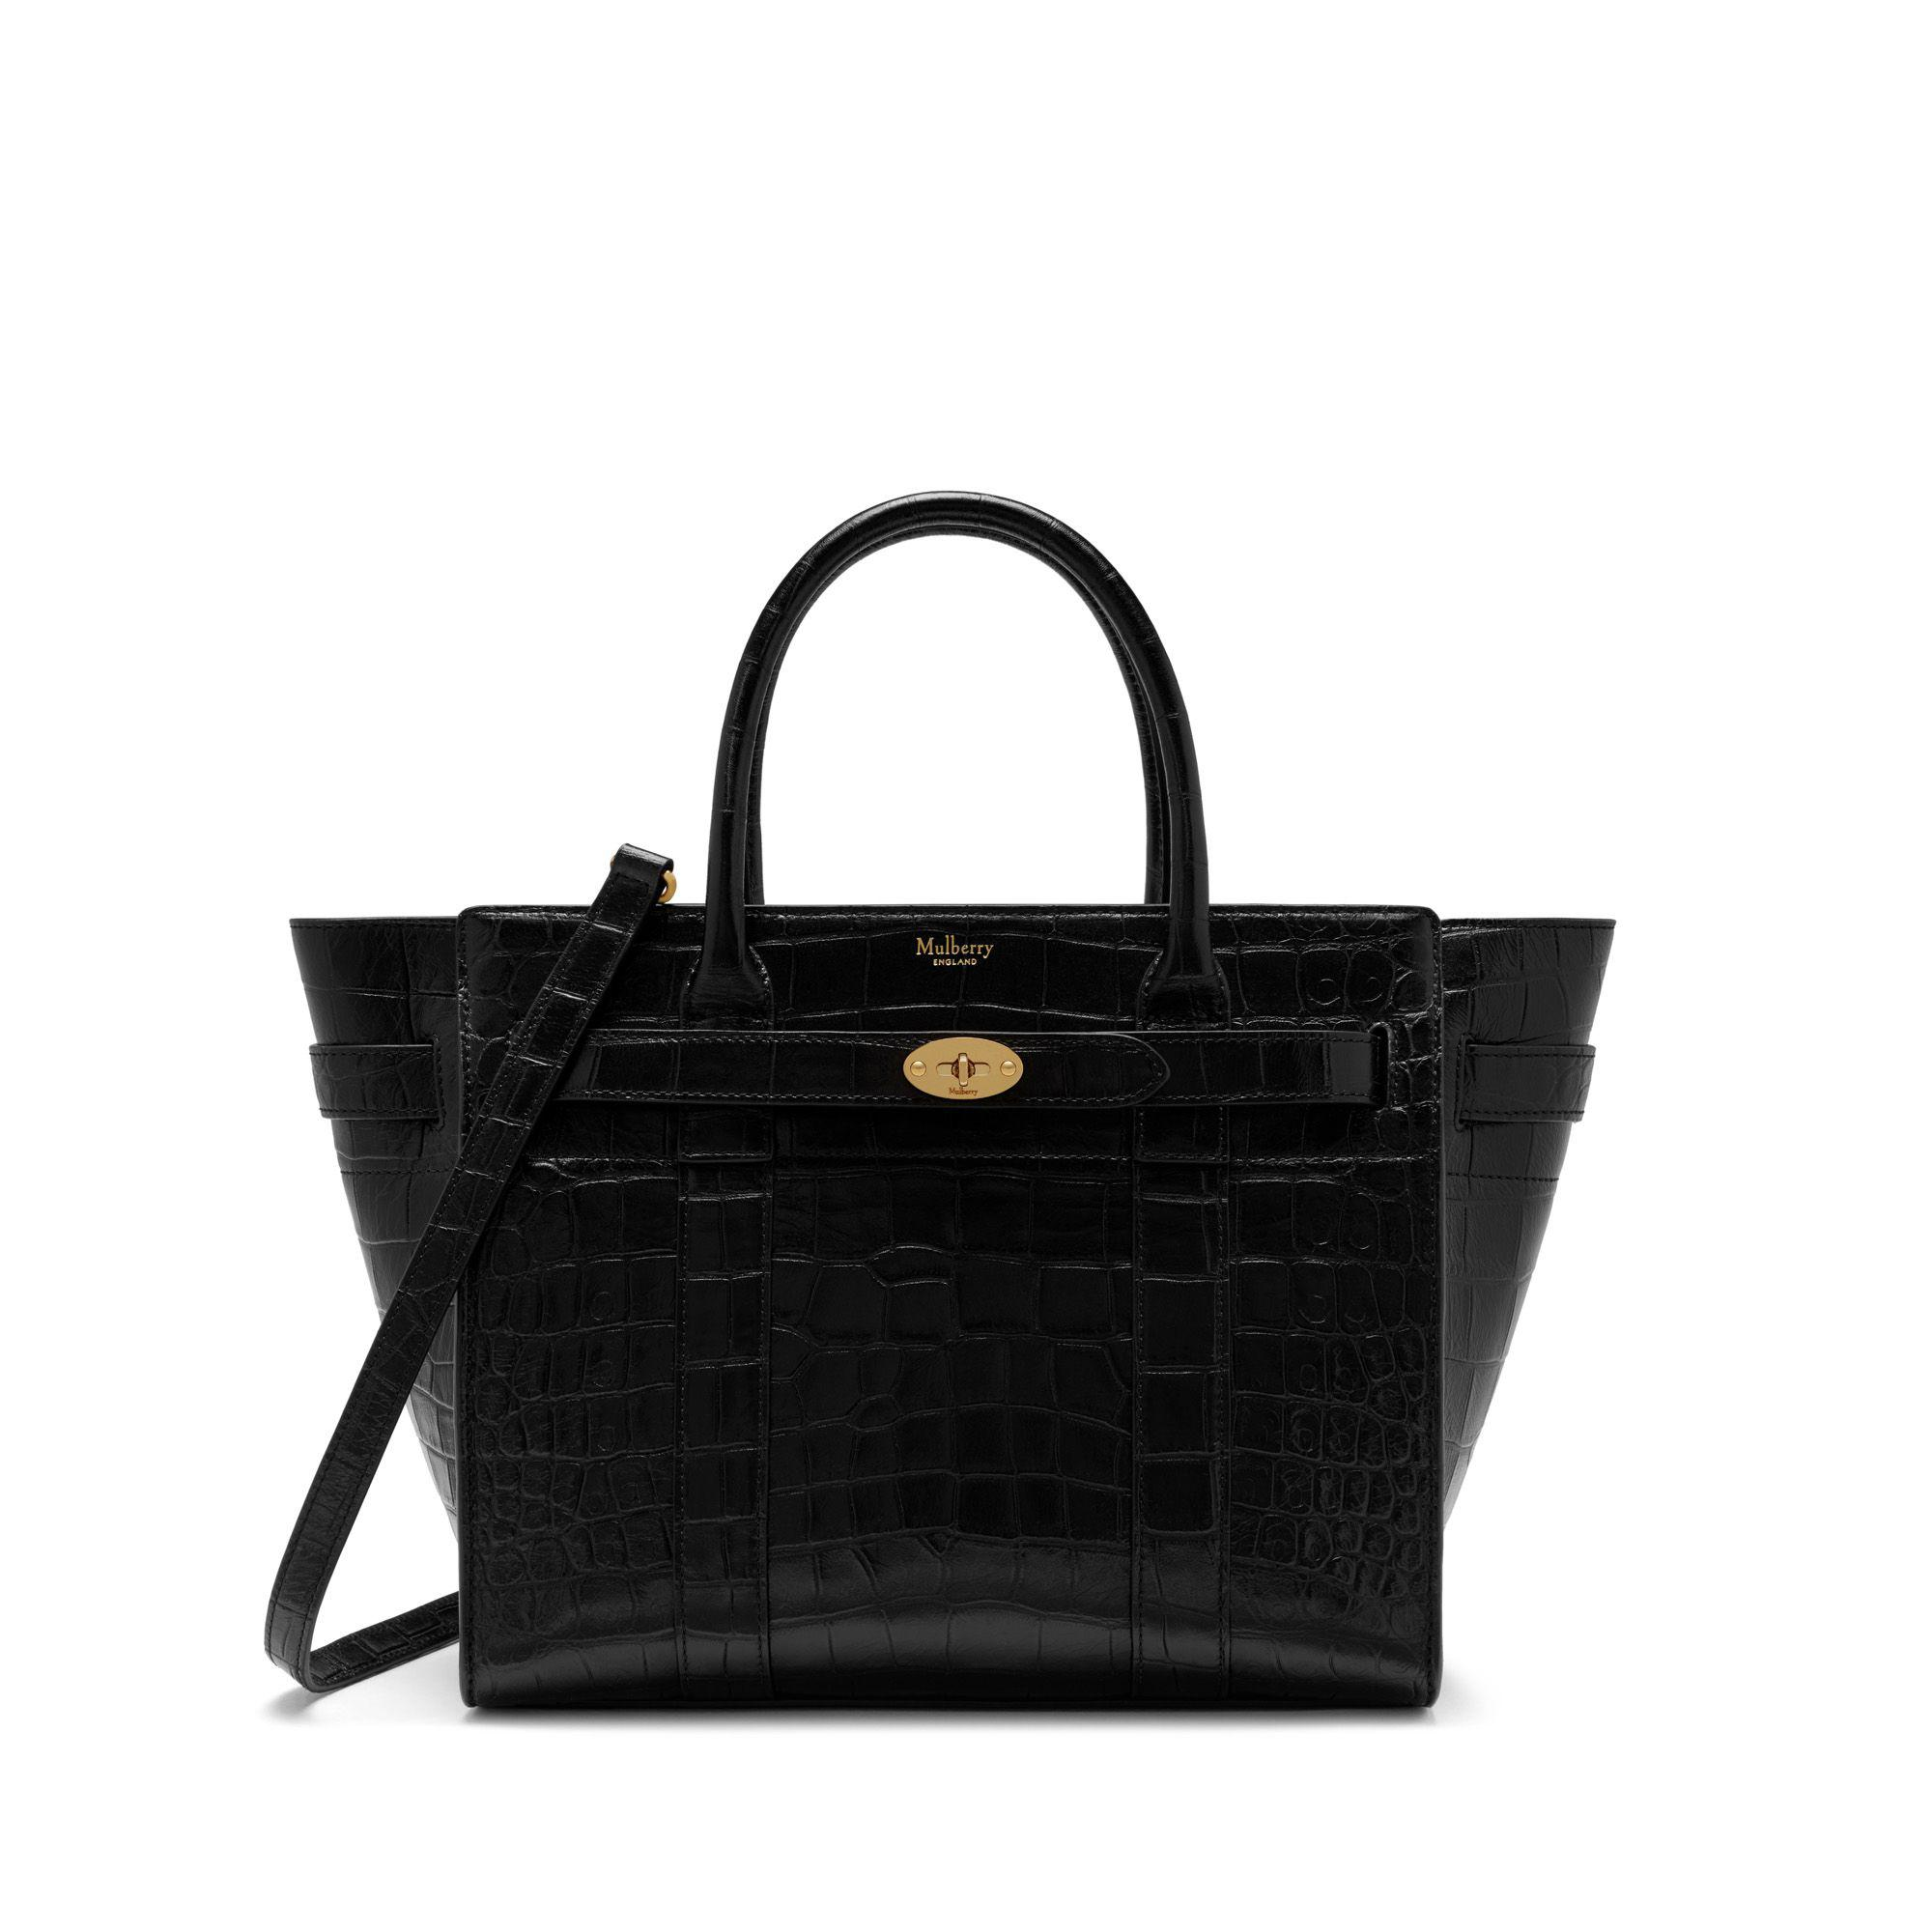 46e0ae9a8279 Mulberry - Small Zipped Bayswater In Black Croc-embossed Nappa - Lyst. View  fullscreen